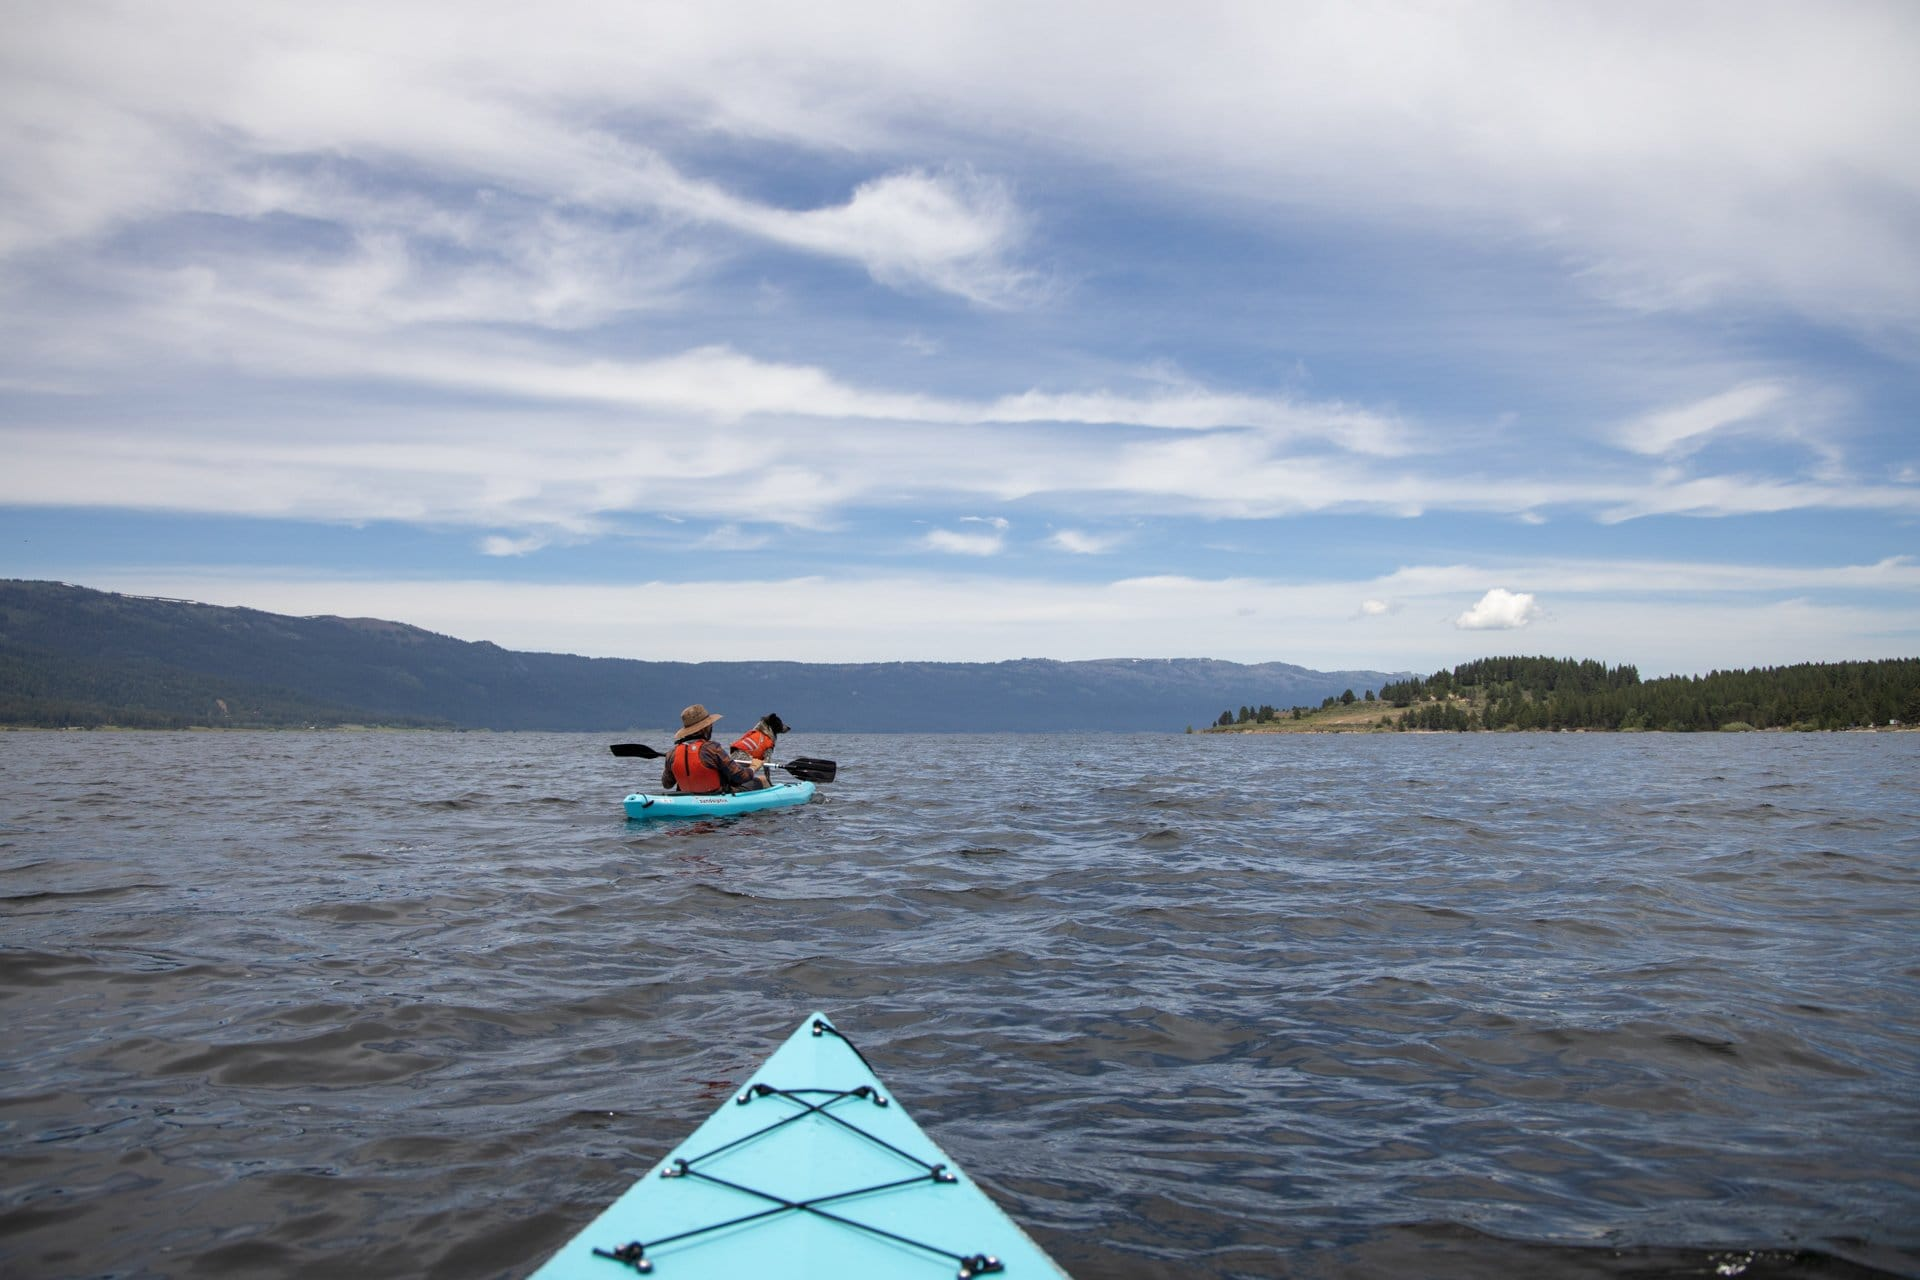 Kayaking on Lake Cascade // Explore the best outdoor recreation in Cascade, Idaho with this 4-day itinerary featuring hot springs, hiking, off-roading, biking, and more.